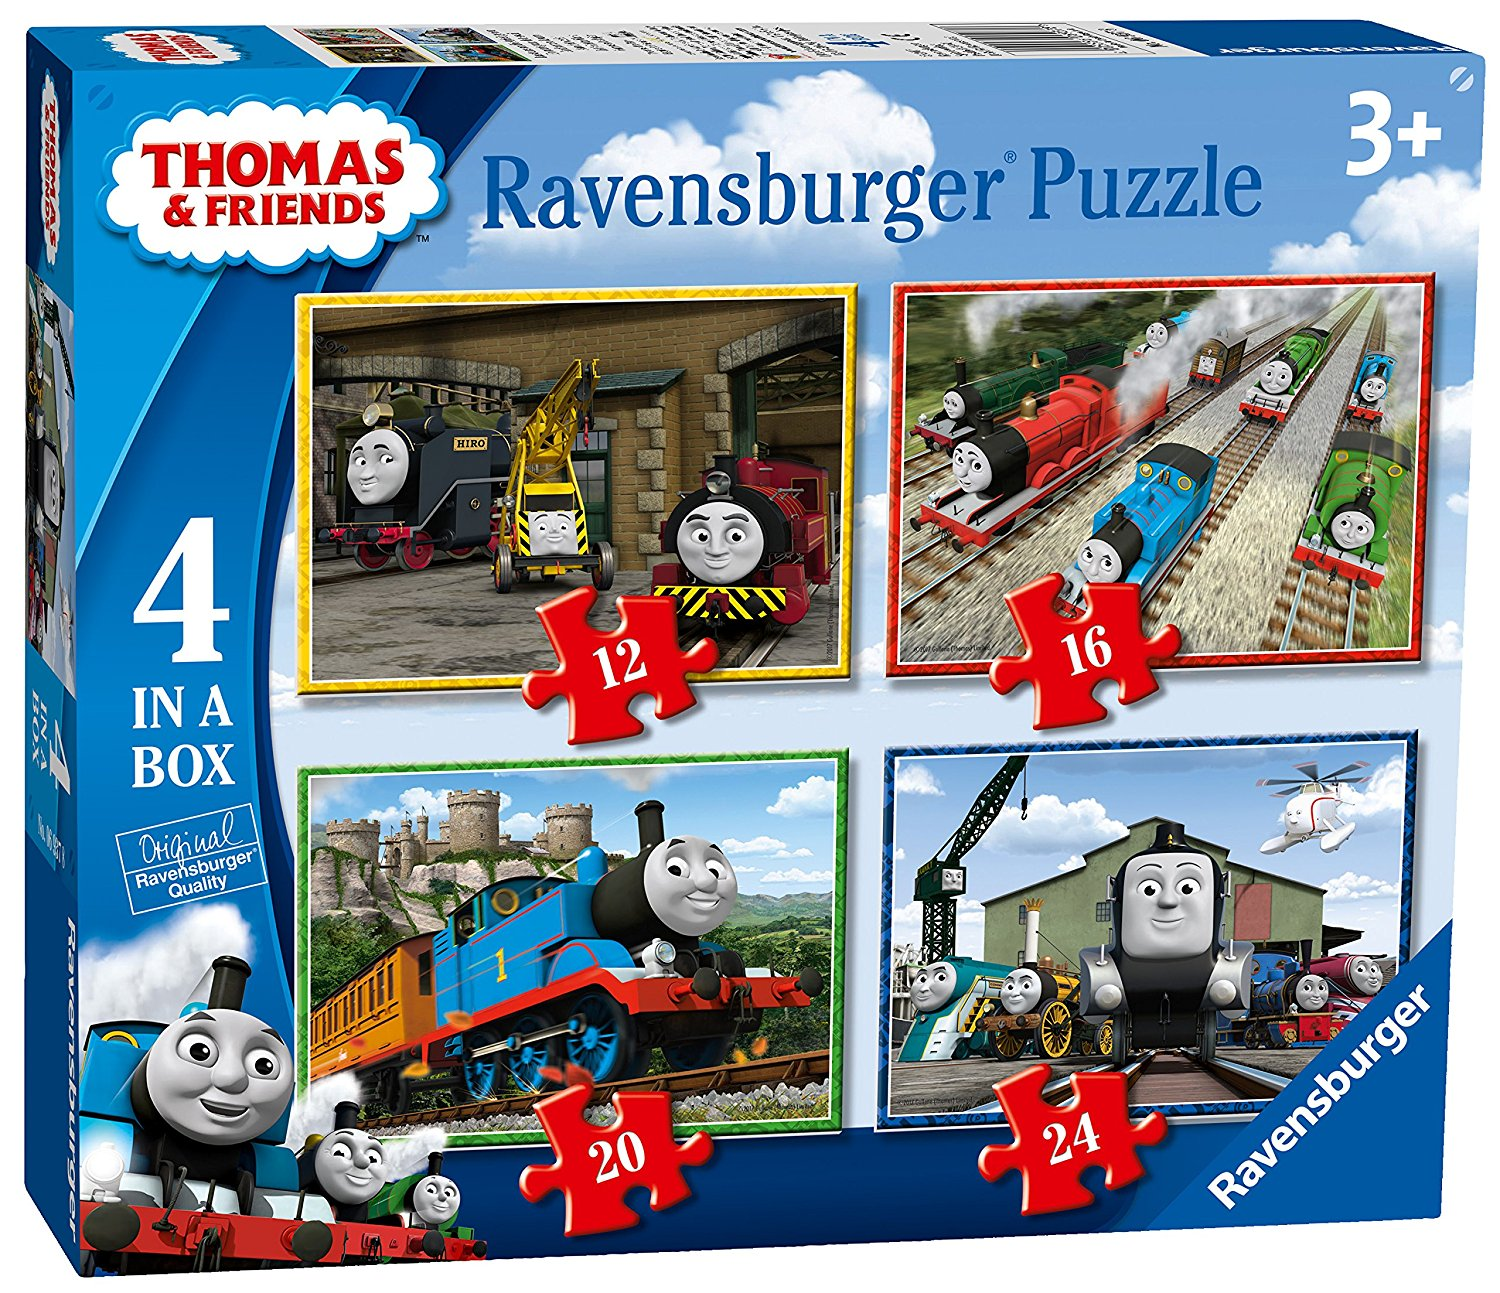 Thomas & Friends 4 in Box, 12pc, 16pc, 20pc & 24pc